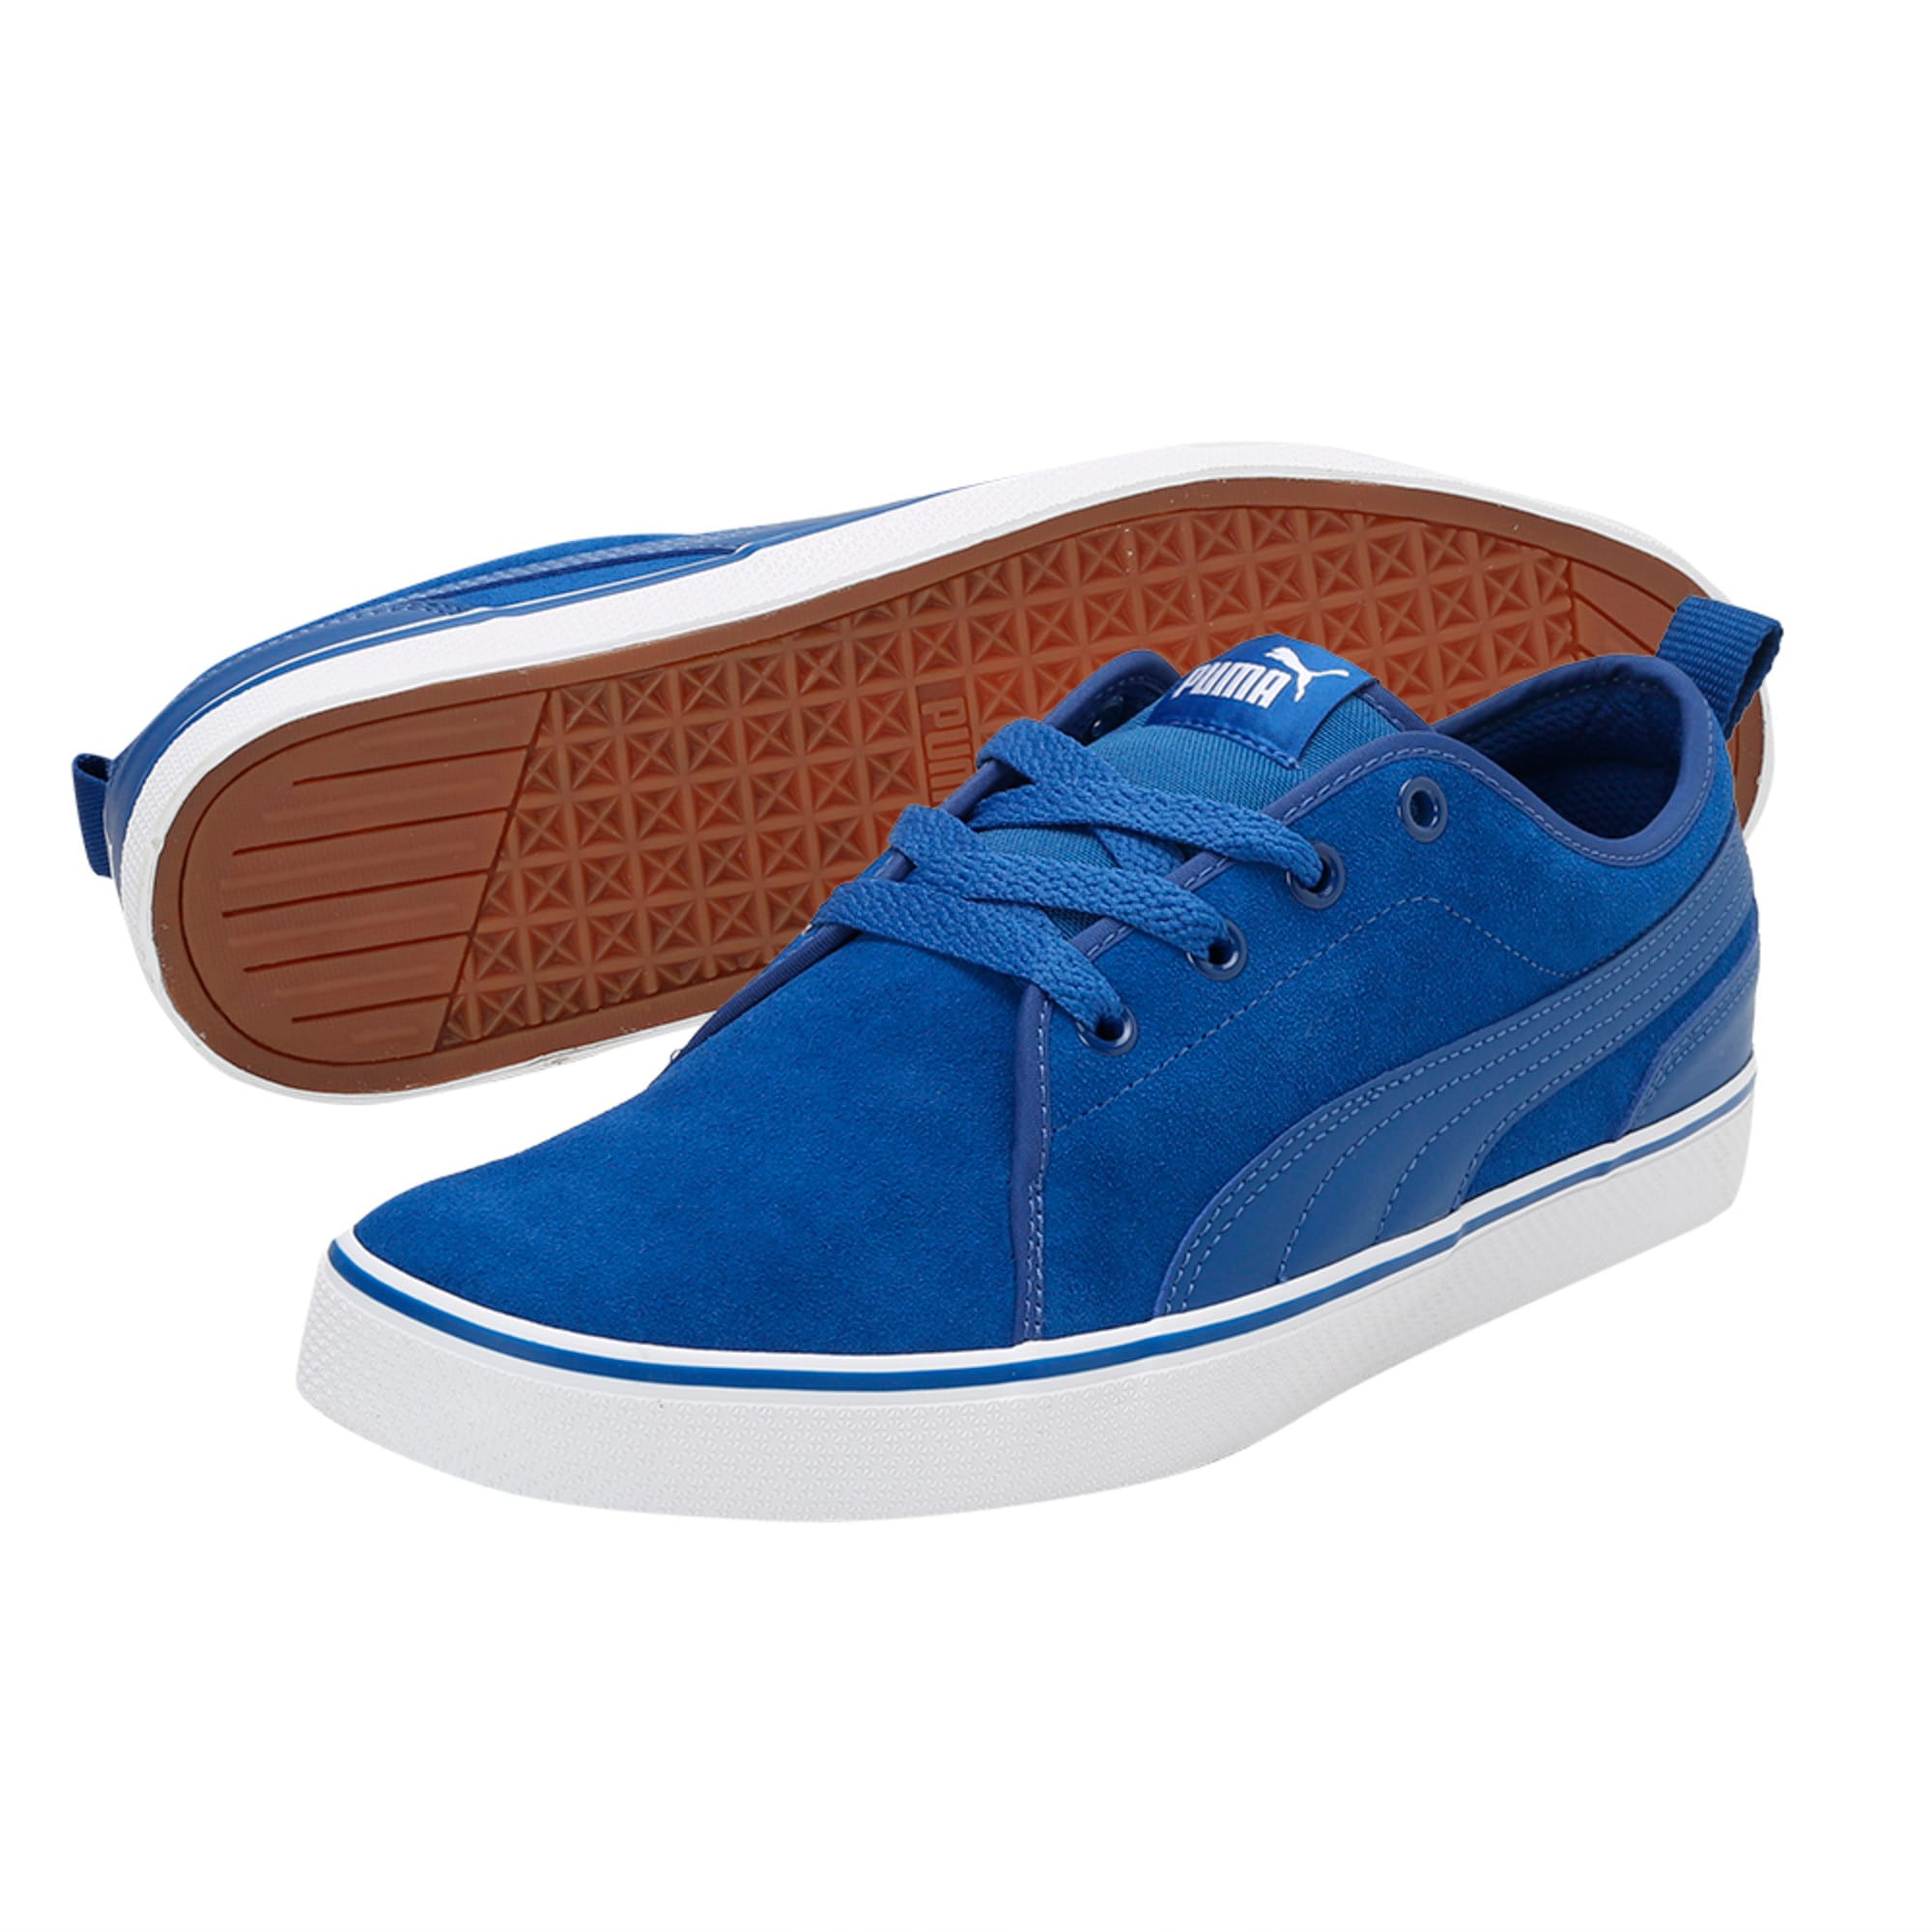 Thumbnail 4 of S Street Vulc, TRUE BLUE-TRUE BLUE, medium-IND